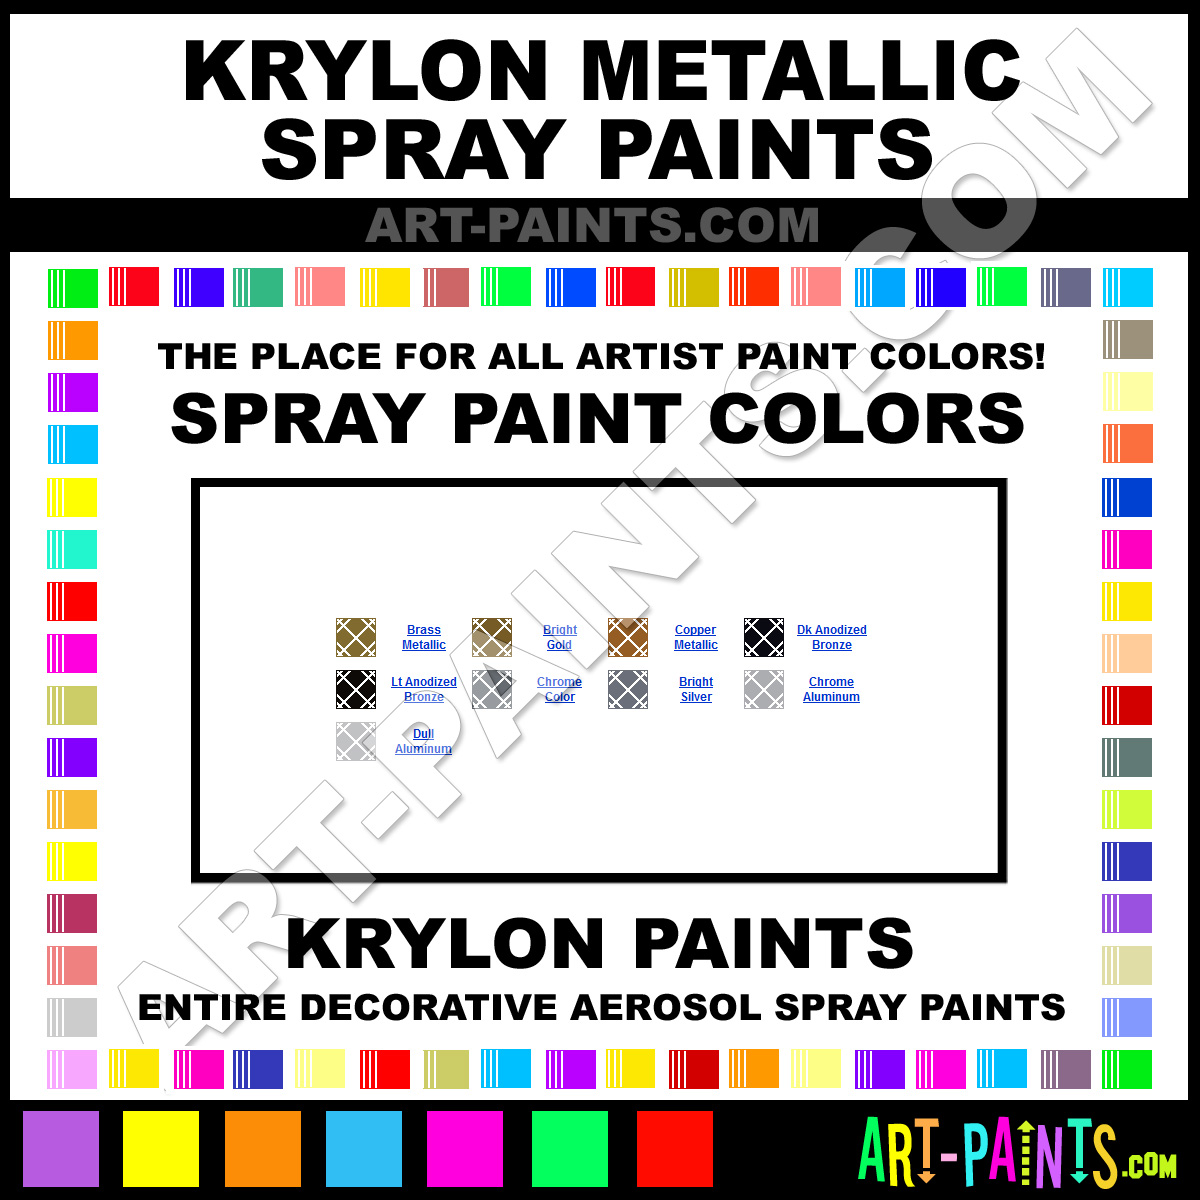 Chrome Aluminum Metallic Spray Paints 1404 Chrome Aluminum Paint Chrome Aluminum Color